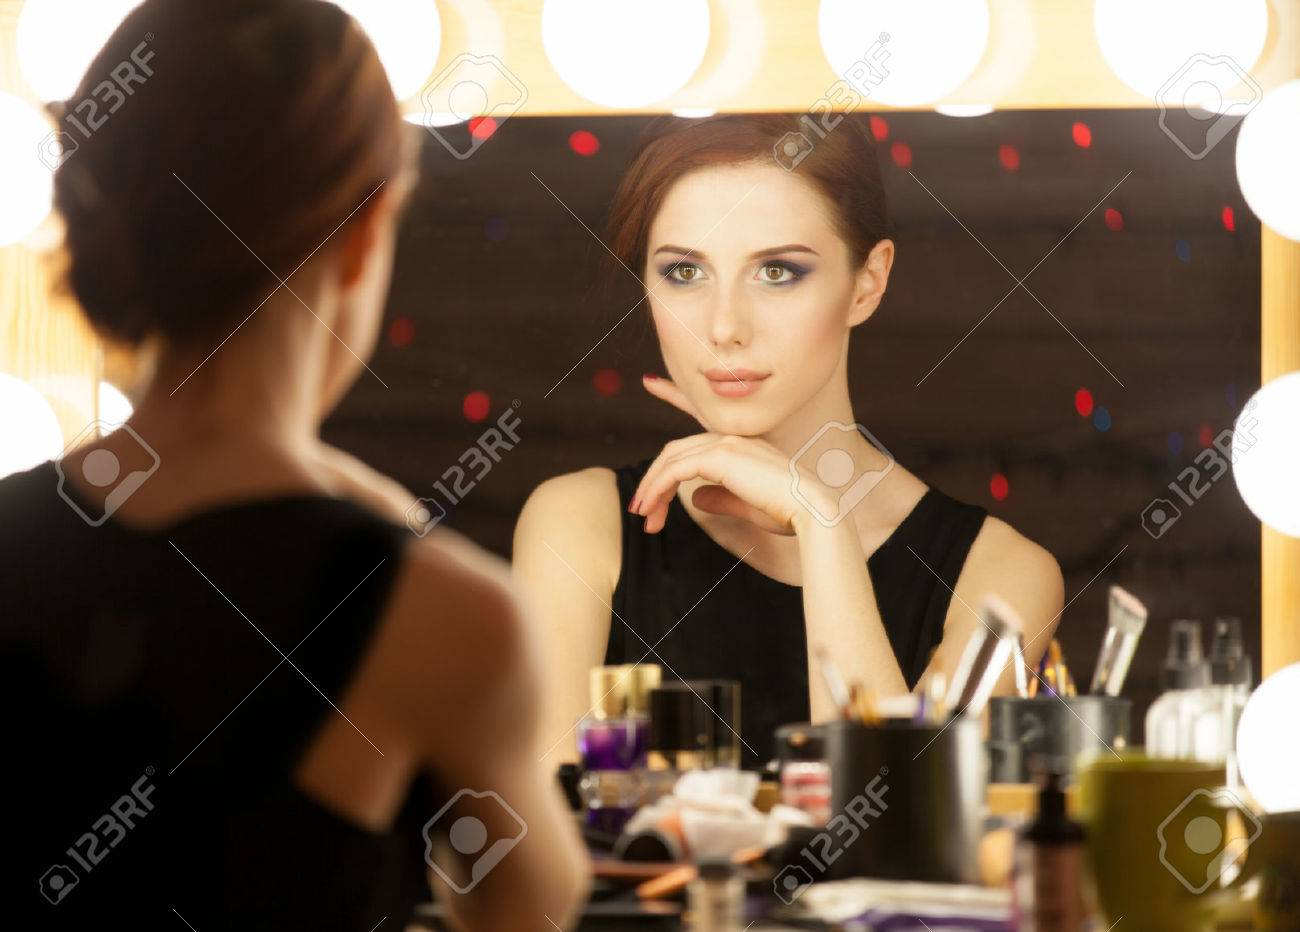 Portrait of a beautiful woman as applying makeup near a mirror. Photo in retro color style. - 39590985